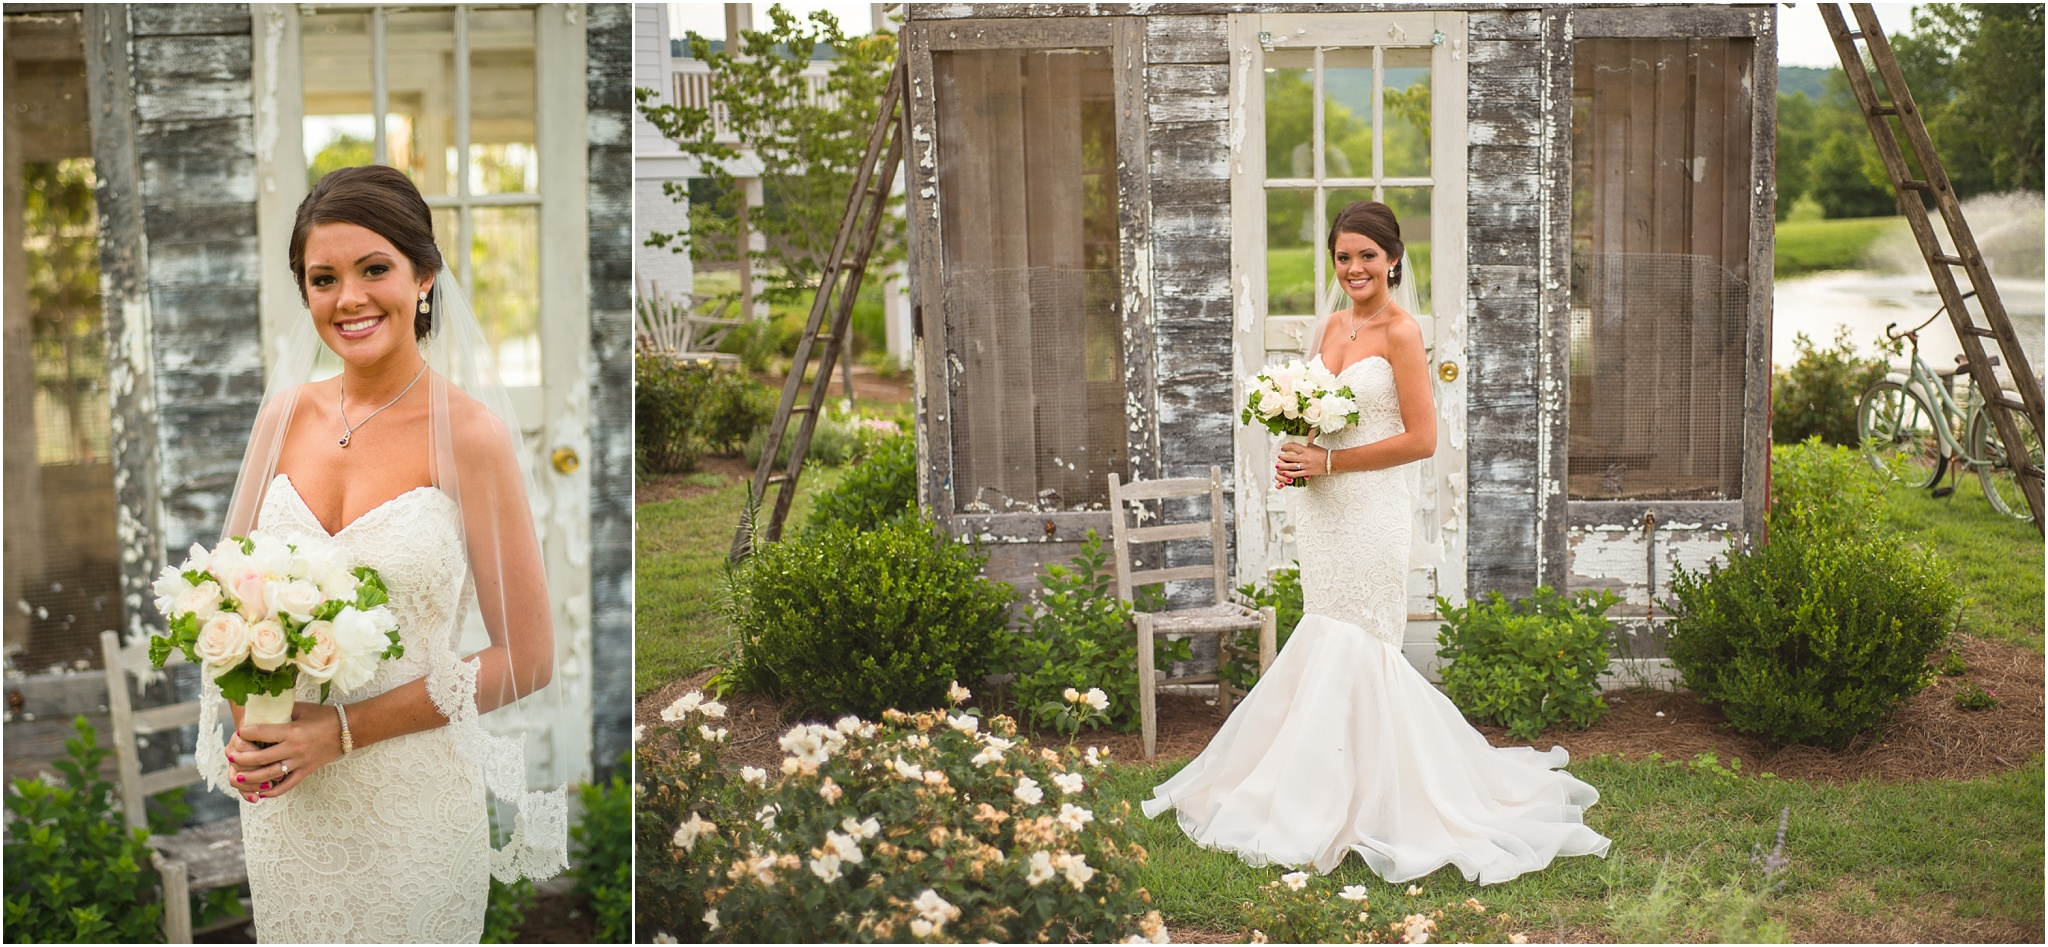 Greg Smit Photography Nashville wedding bridal photographer Mint Springs Farm 1